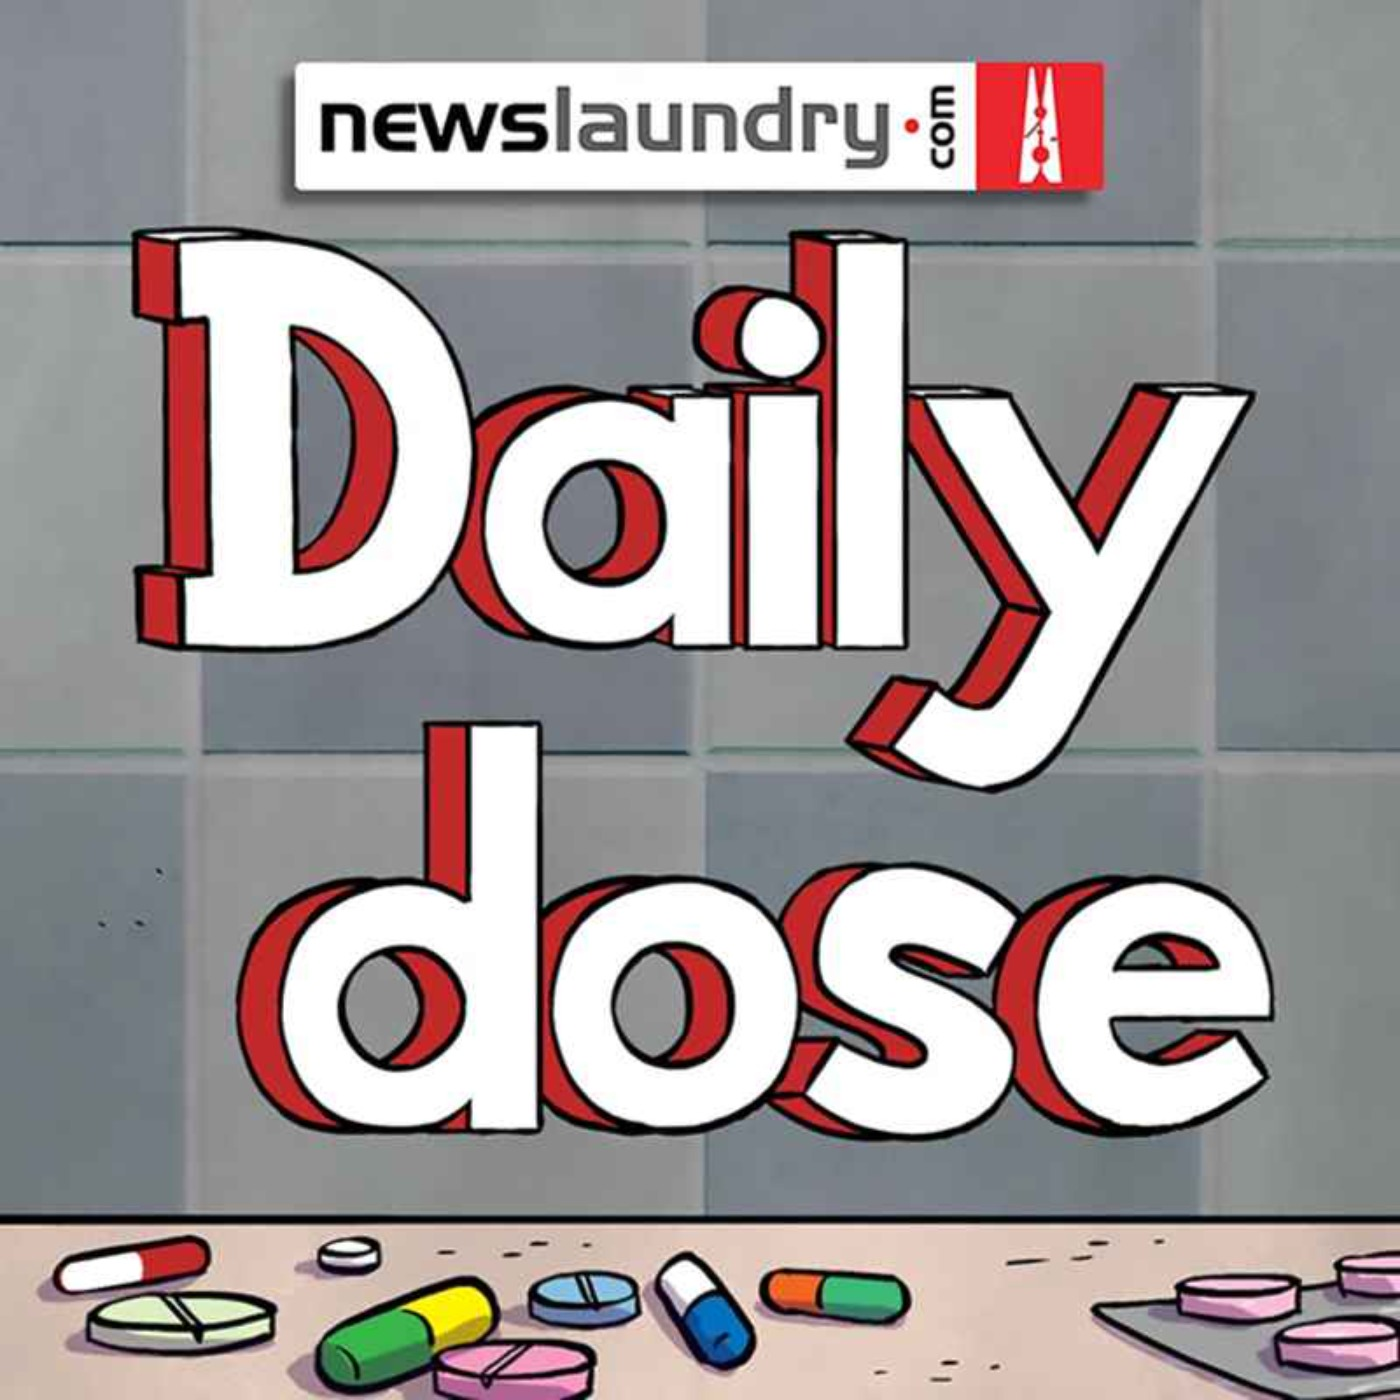 Daily Dose Ep 706: Covid updates, Mizoram forest fire, Twitter removes Covid posts